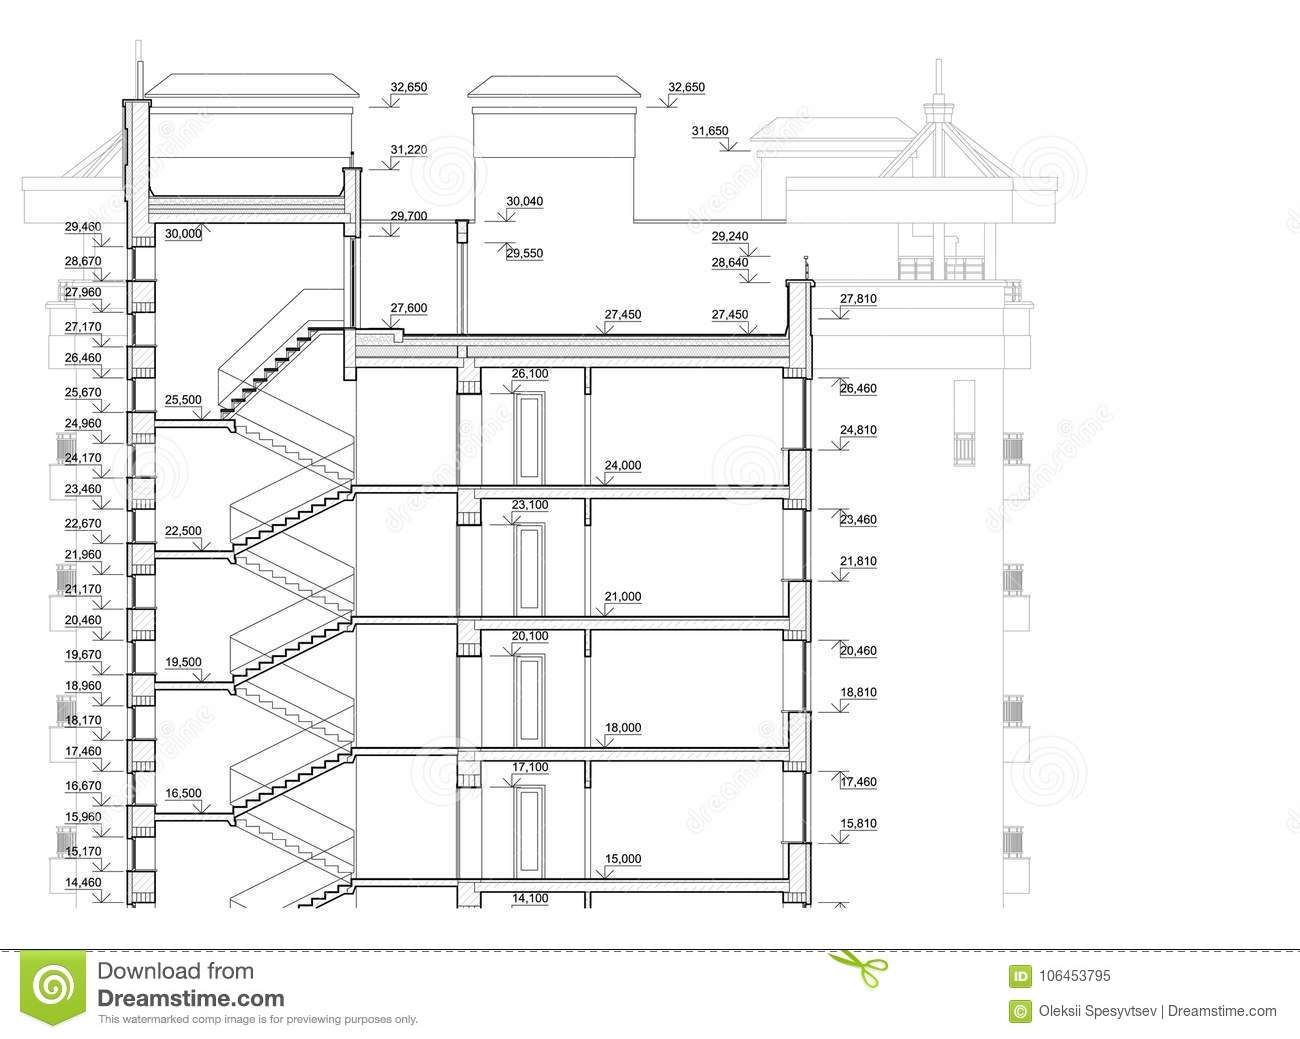 Detailed Architectural Plan Of Multistory Building Cross